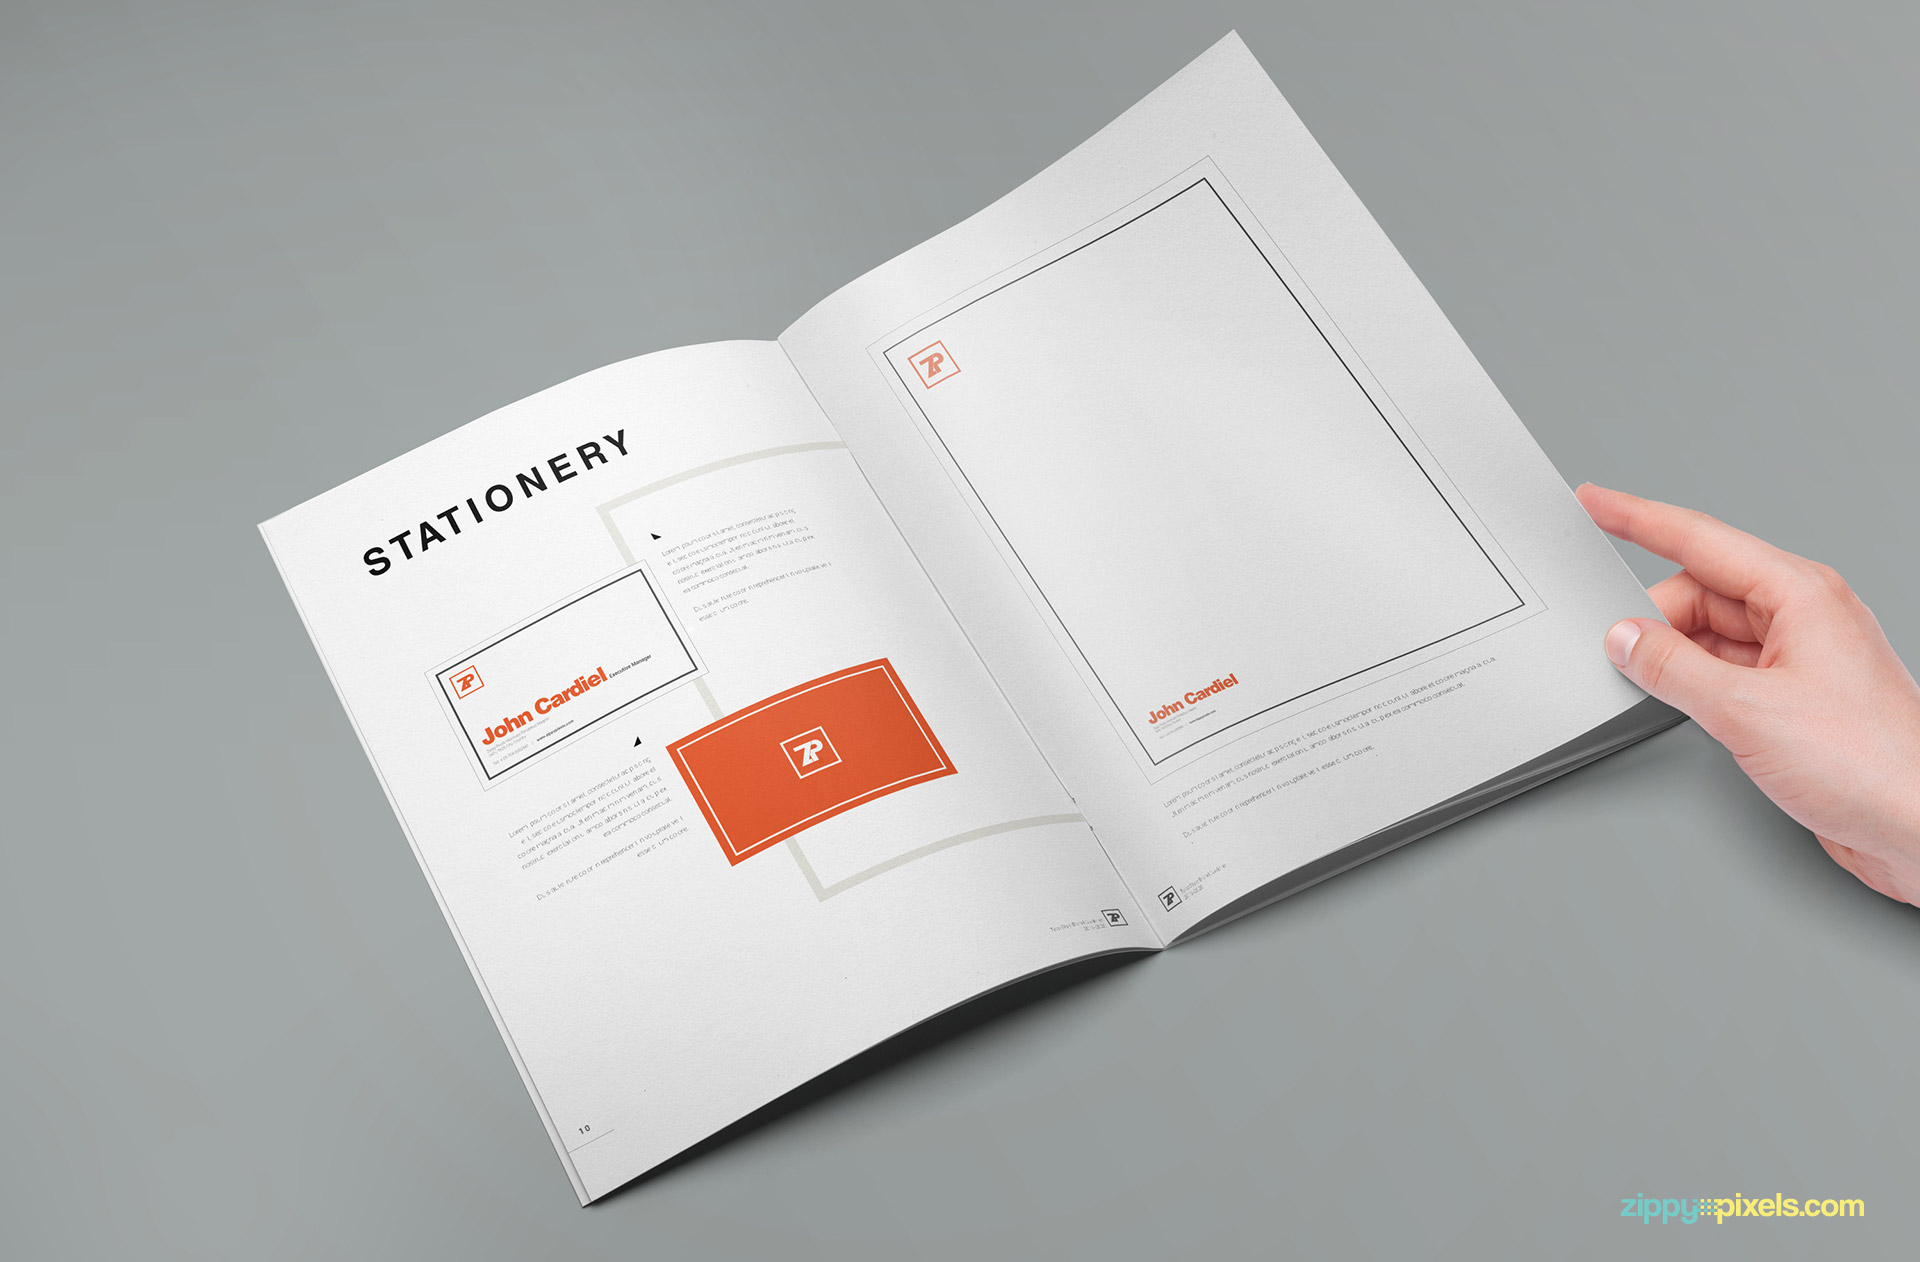 a print ready style guide for your business